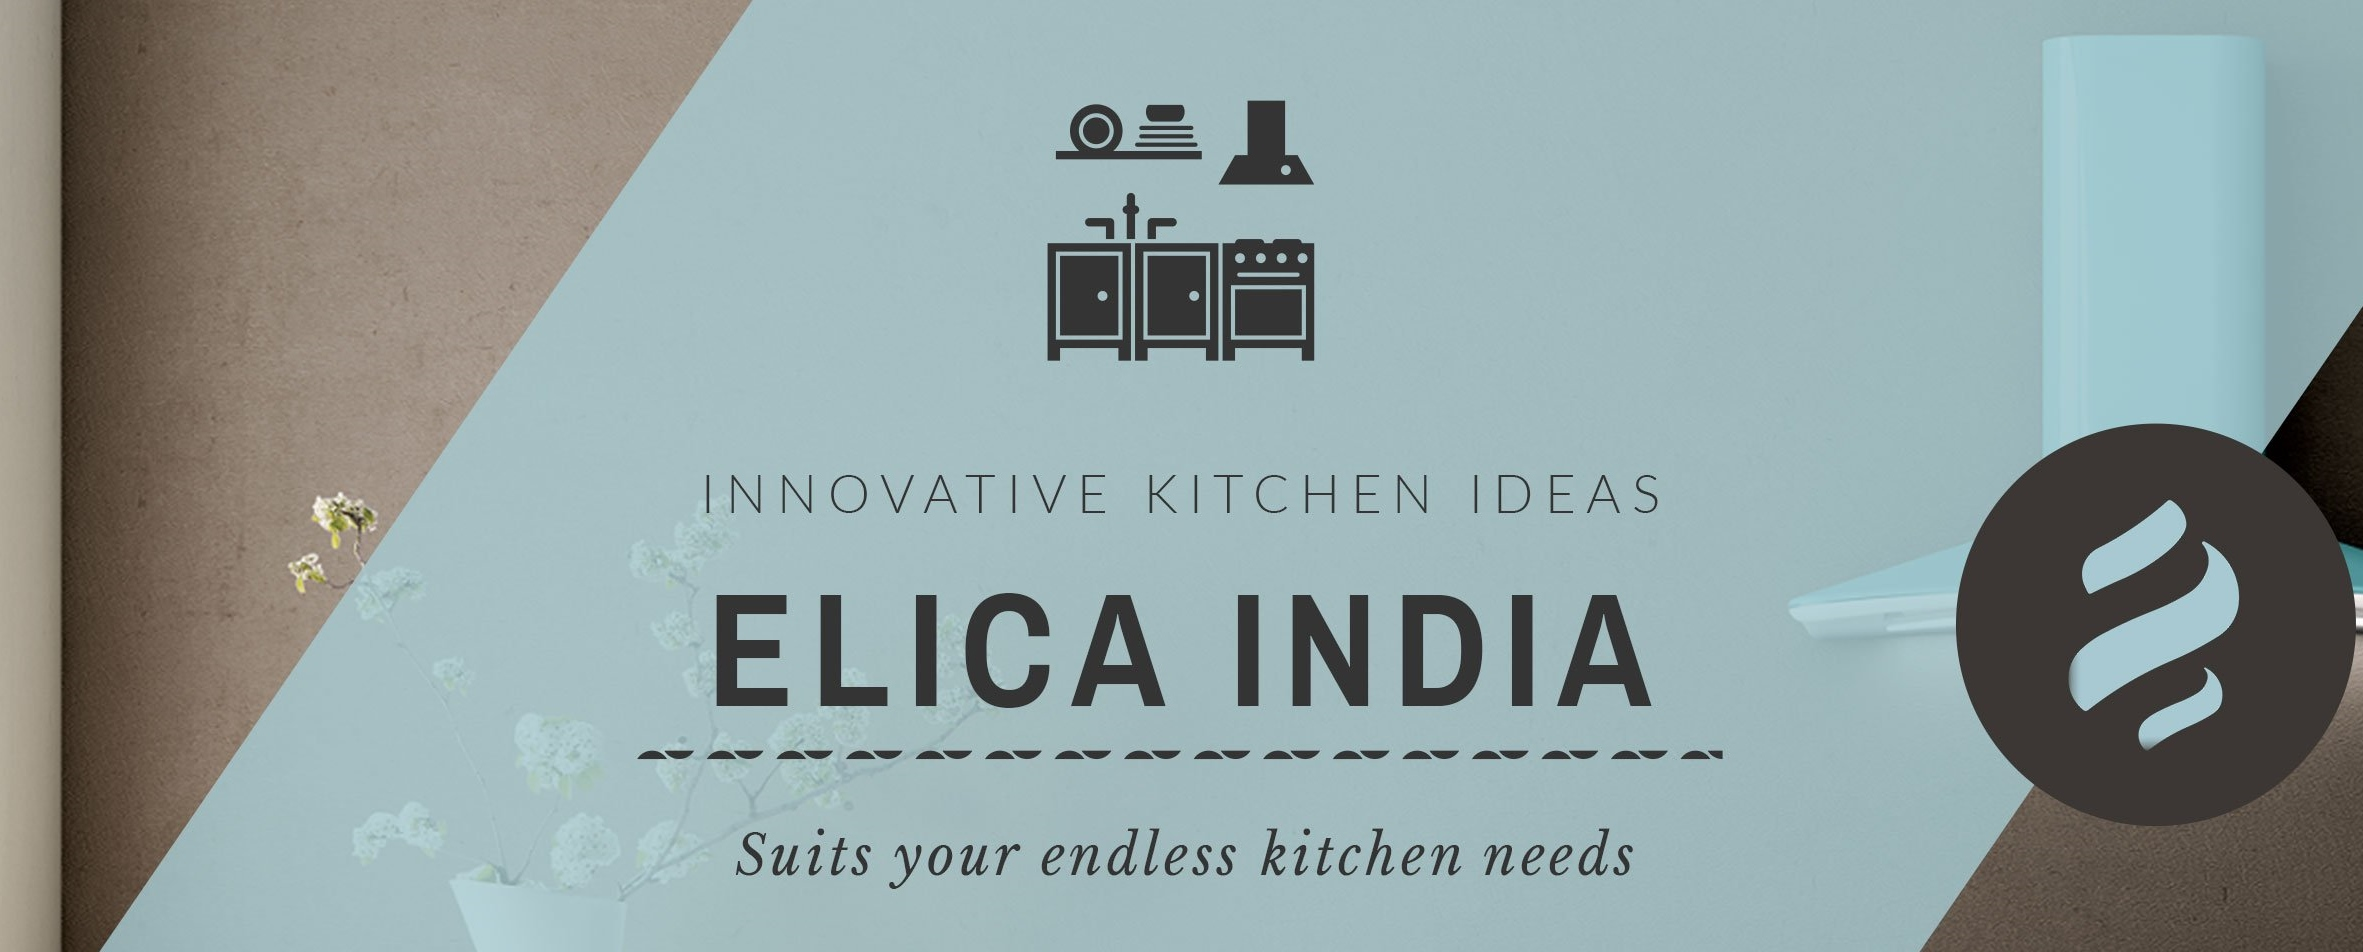 Joint-venture Elica-Whirlpool in India - Home Appliances World